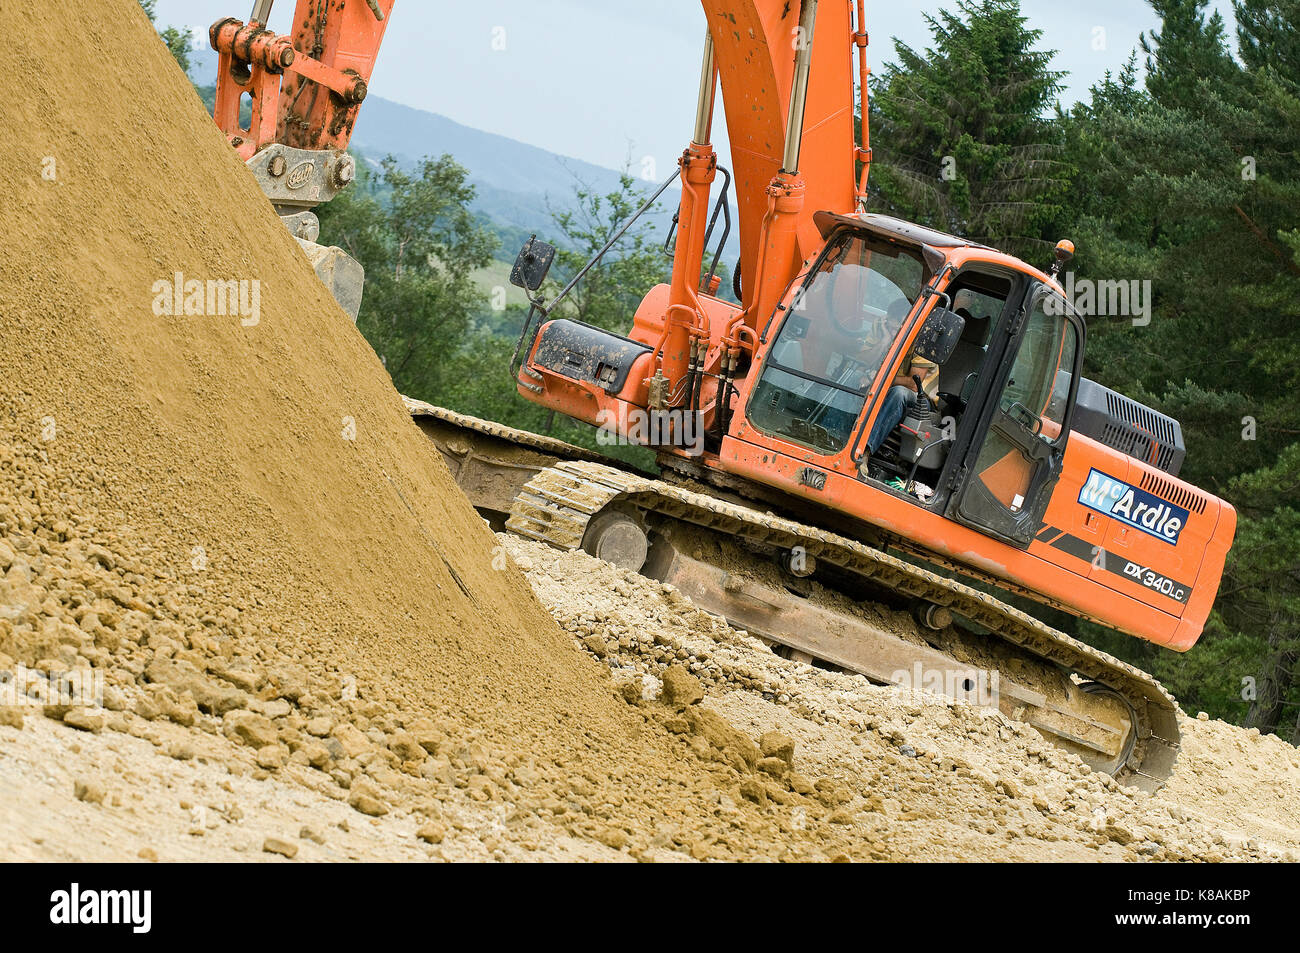 a digger or JCB large plant or machinery working on a building site moving a pile of spoil or sand with a scoop - Stock Image